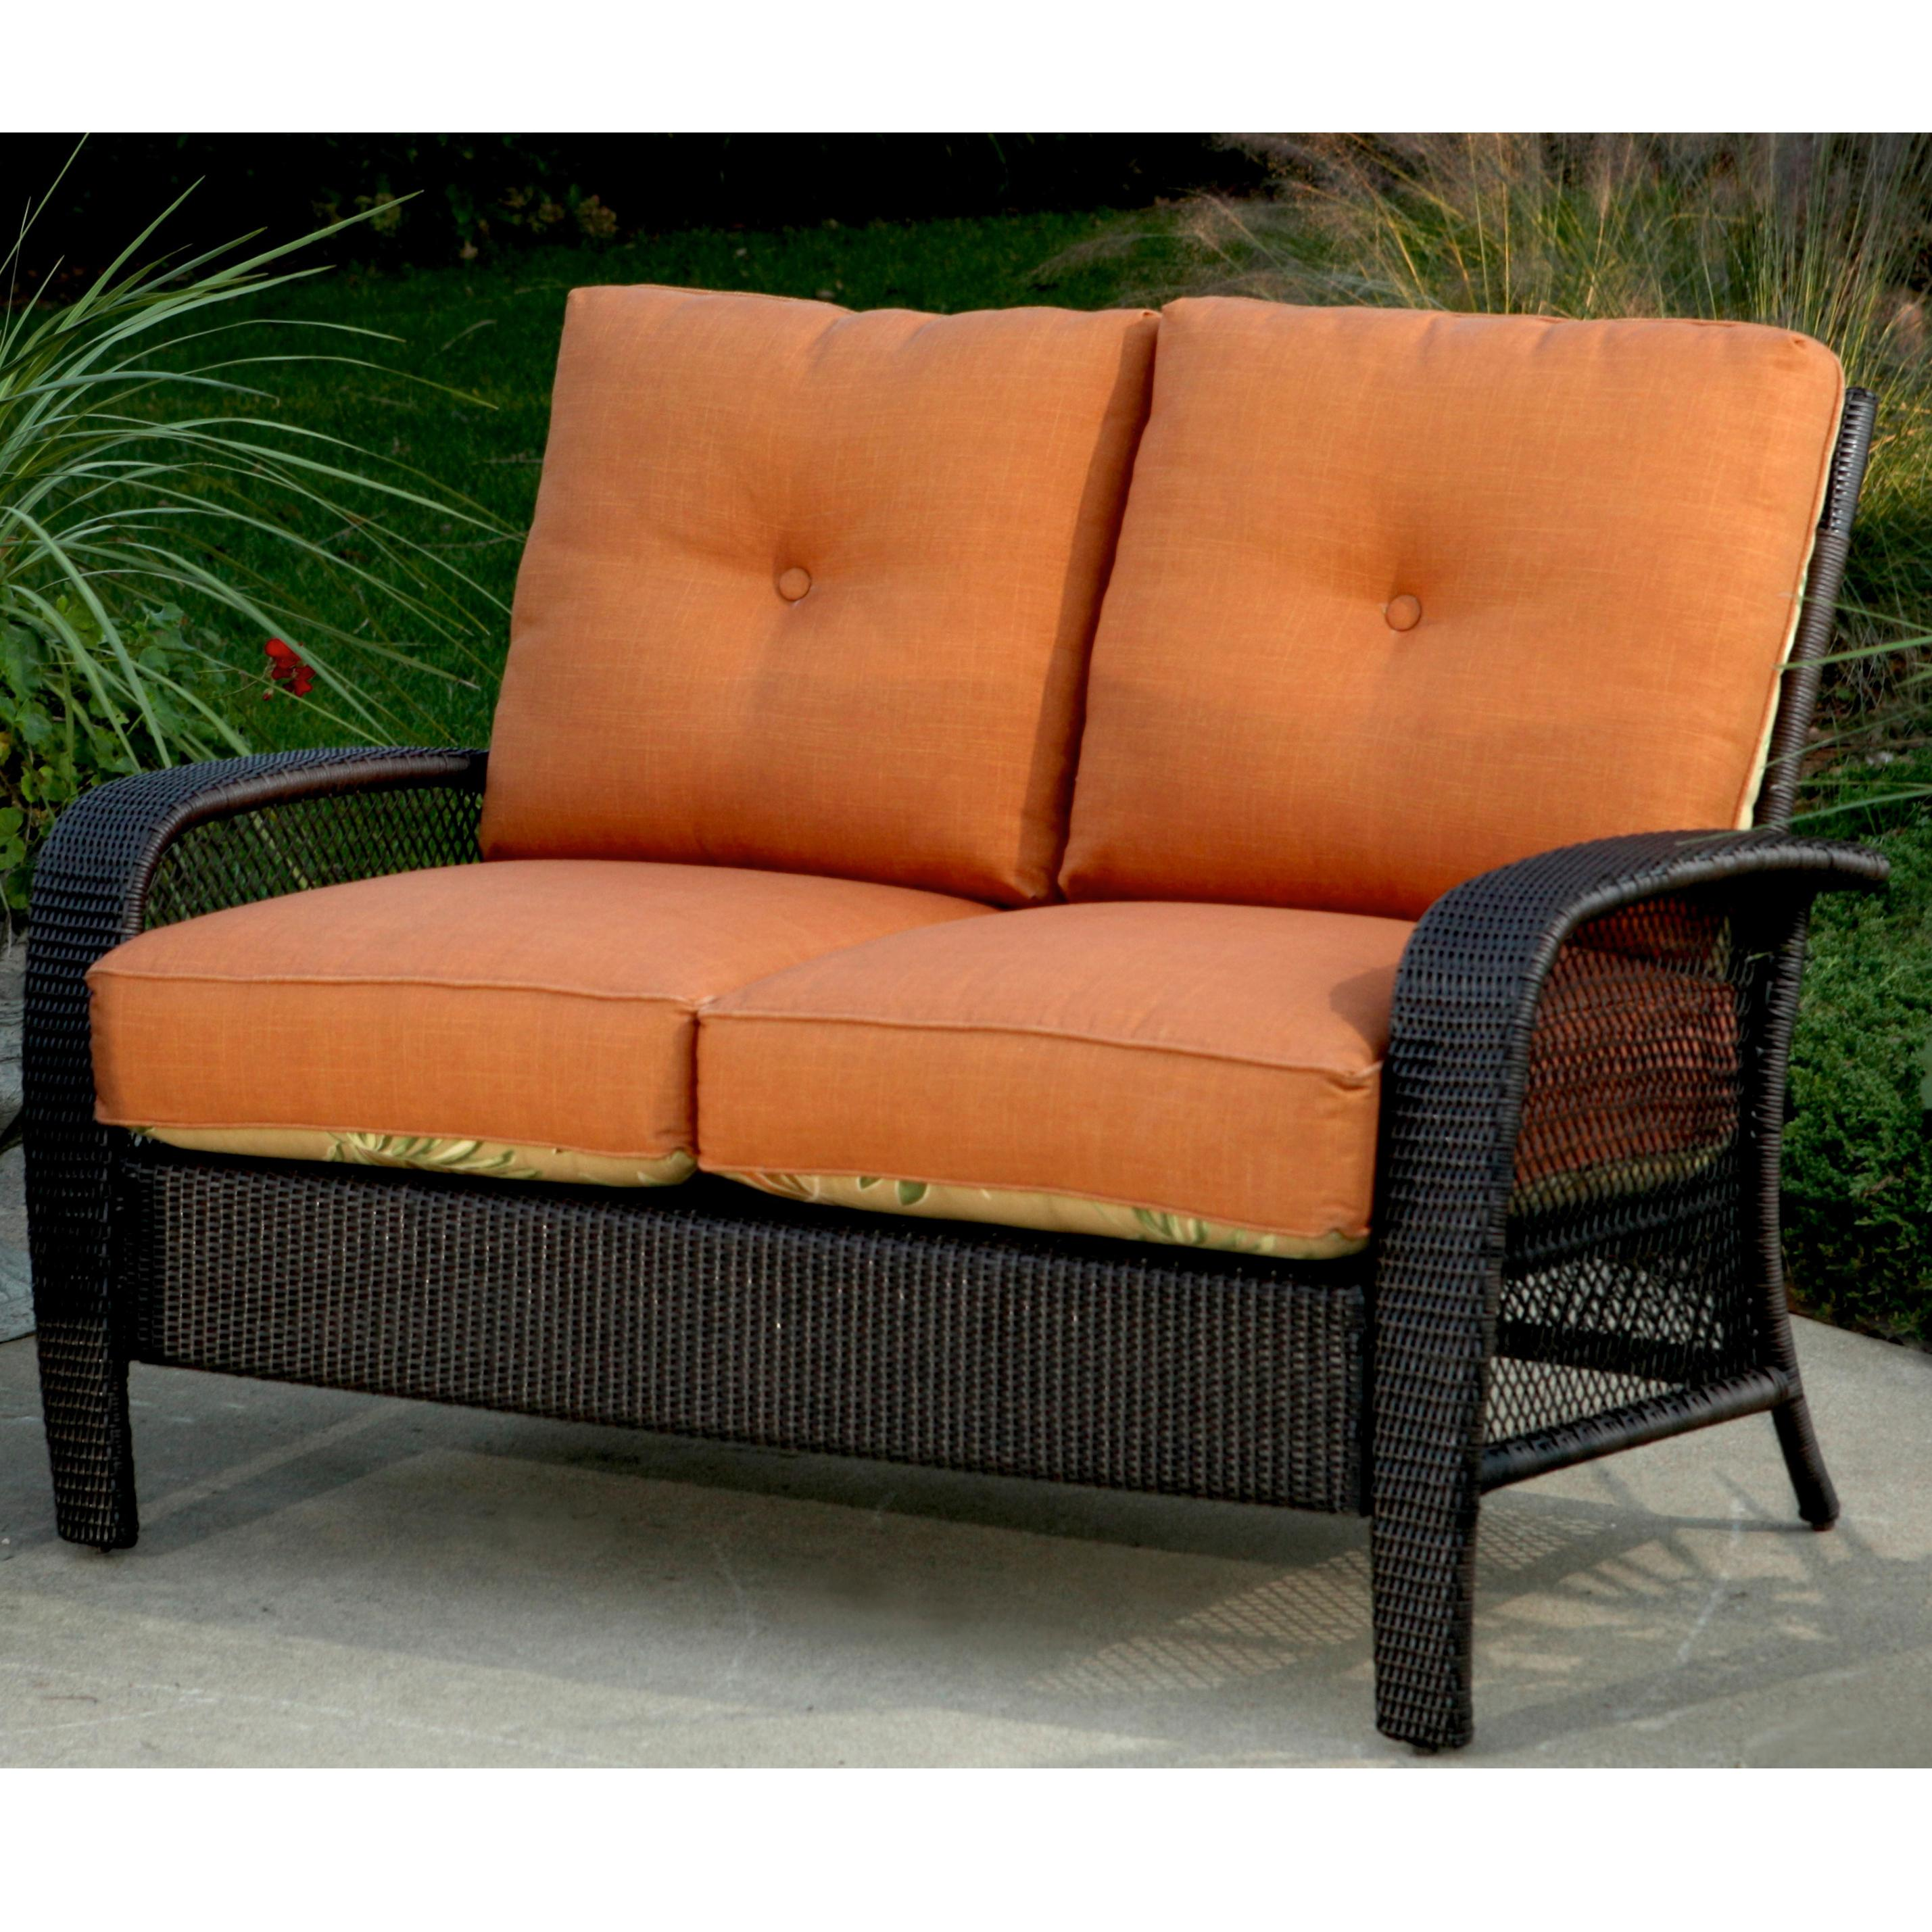 Agio Martinique Outdoor Wicker Loveseat with Interchangable Seat